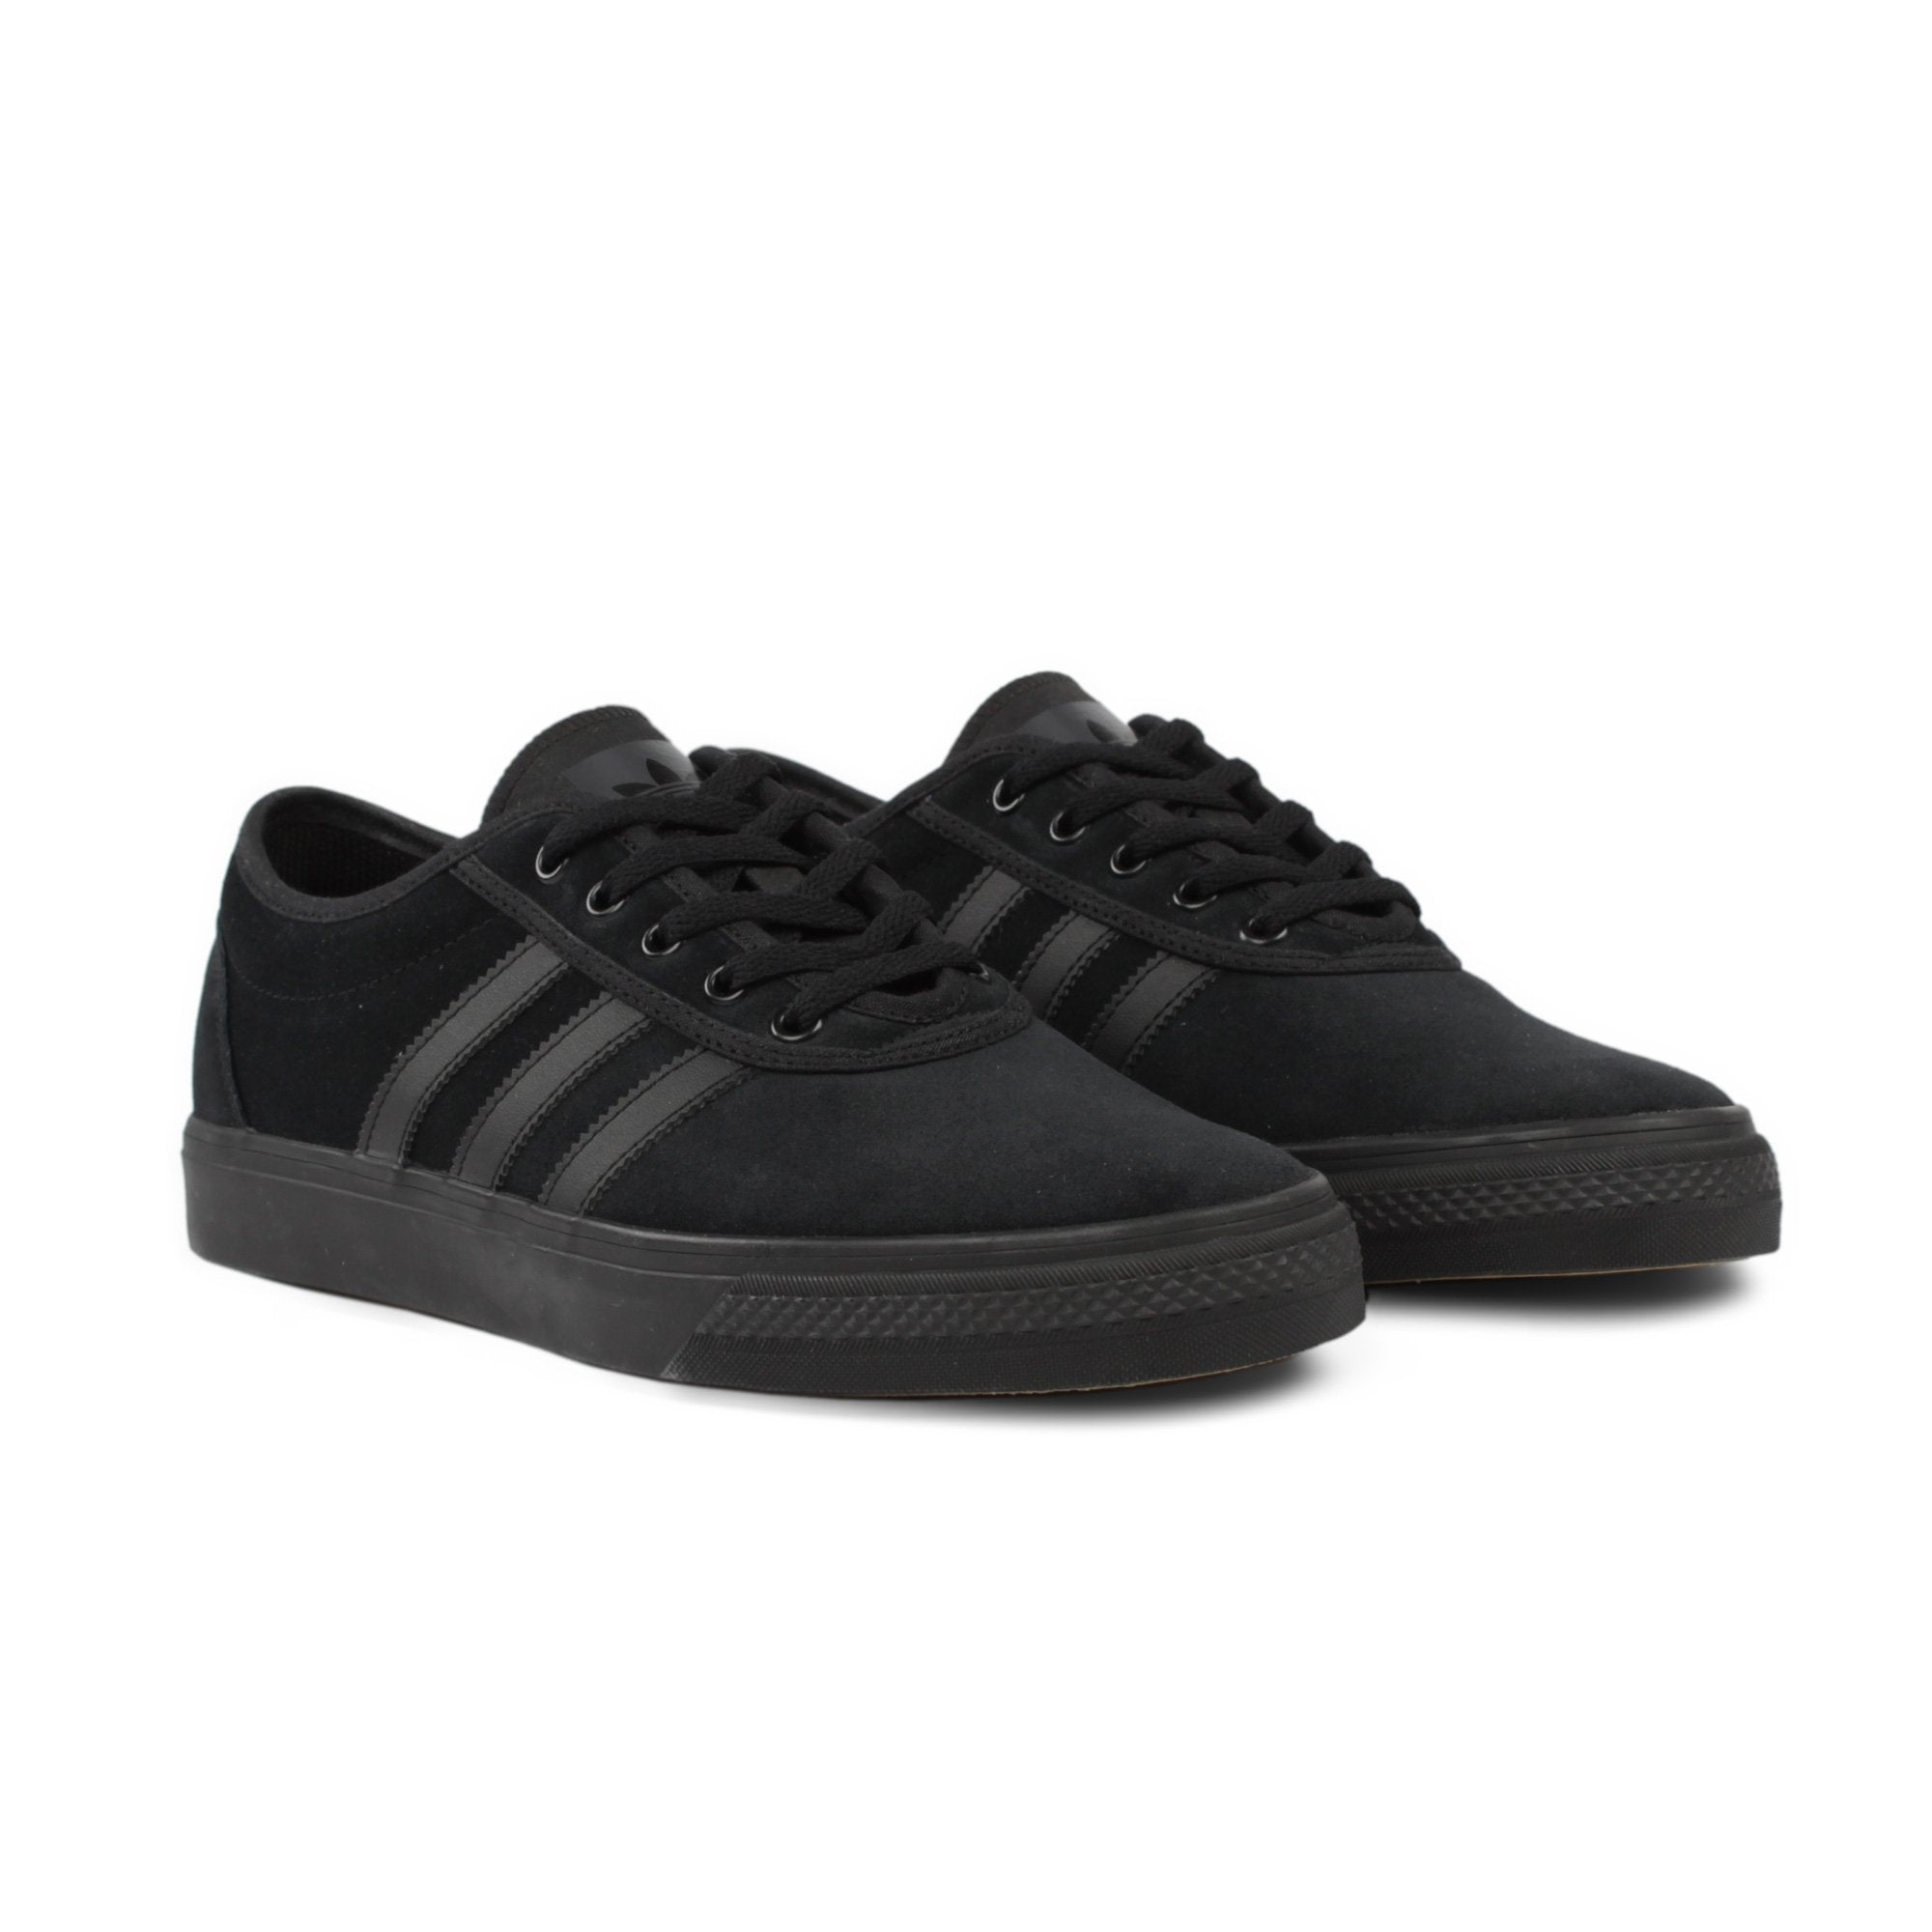 Adidas Adi-Ease Product Photo #2